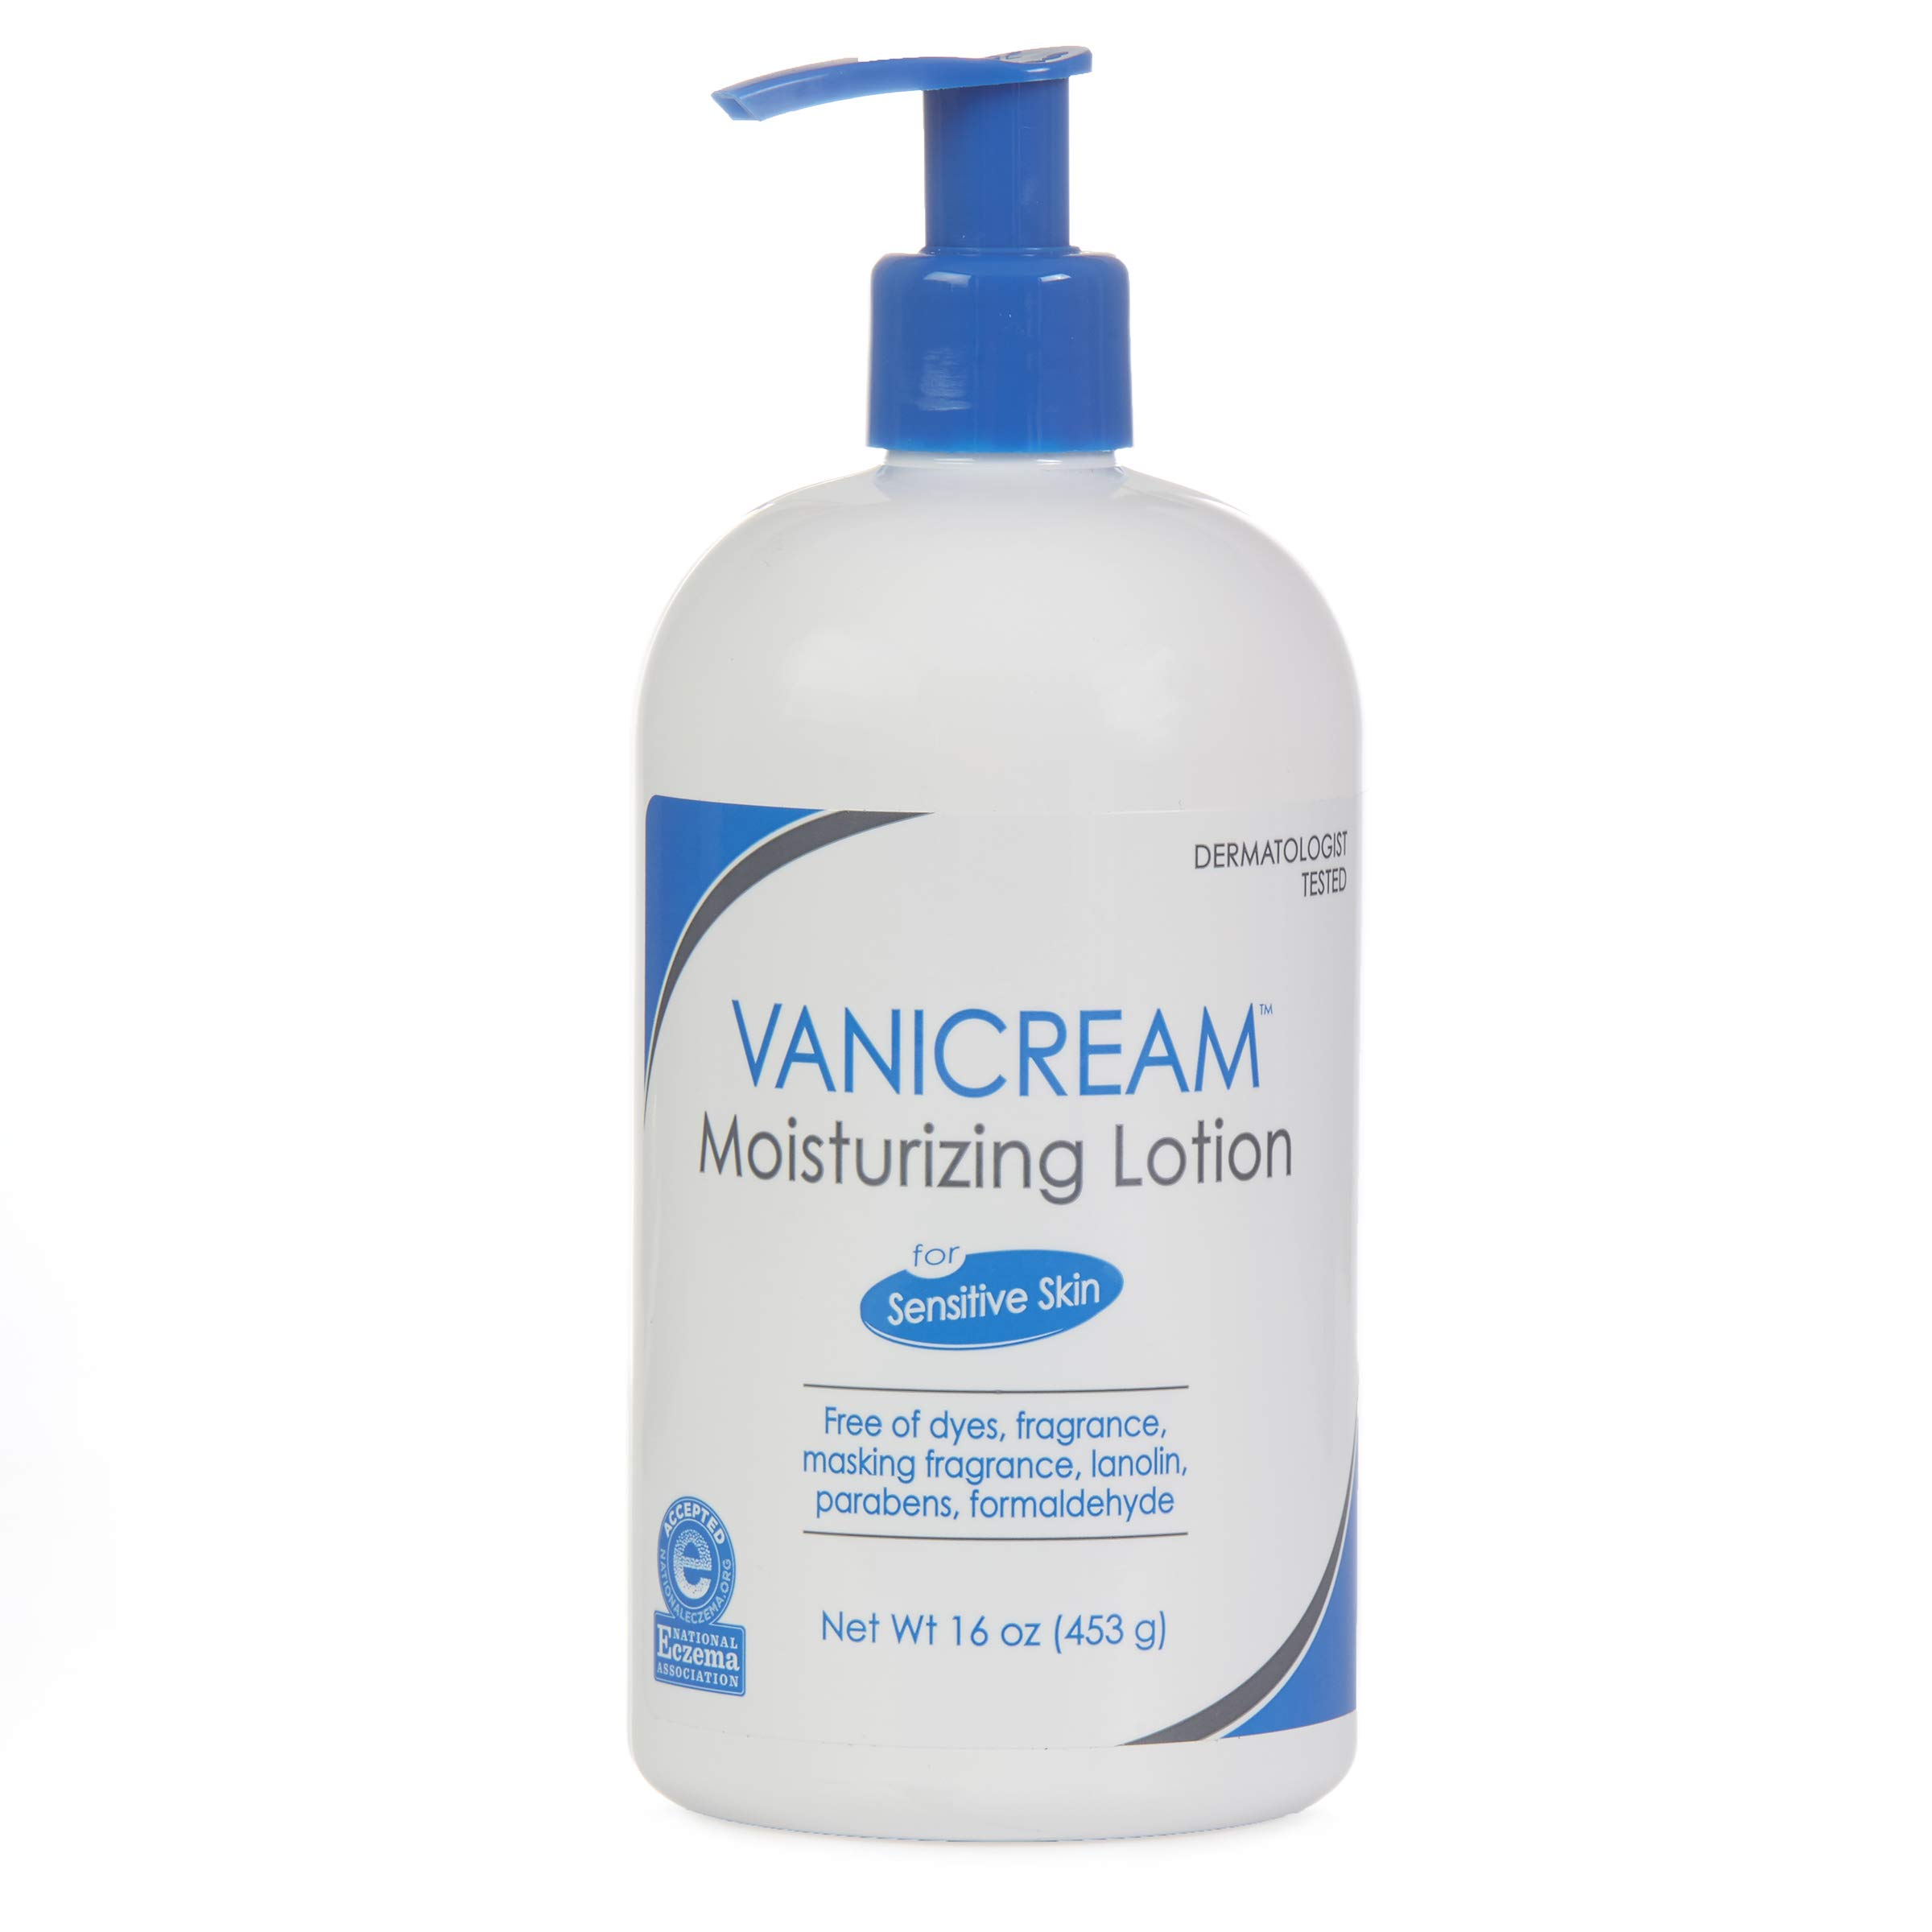 Vanicream Moisturizing Lotion with Pump | Fragrance and Gluten Free | For Sensitive Skin | 16 Ounce (Pack of 1)